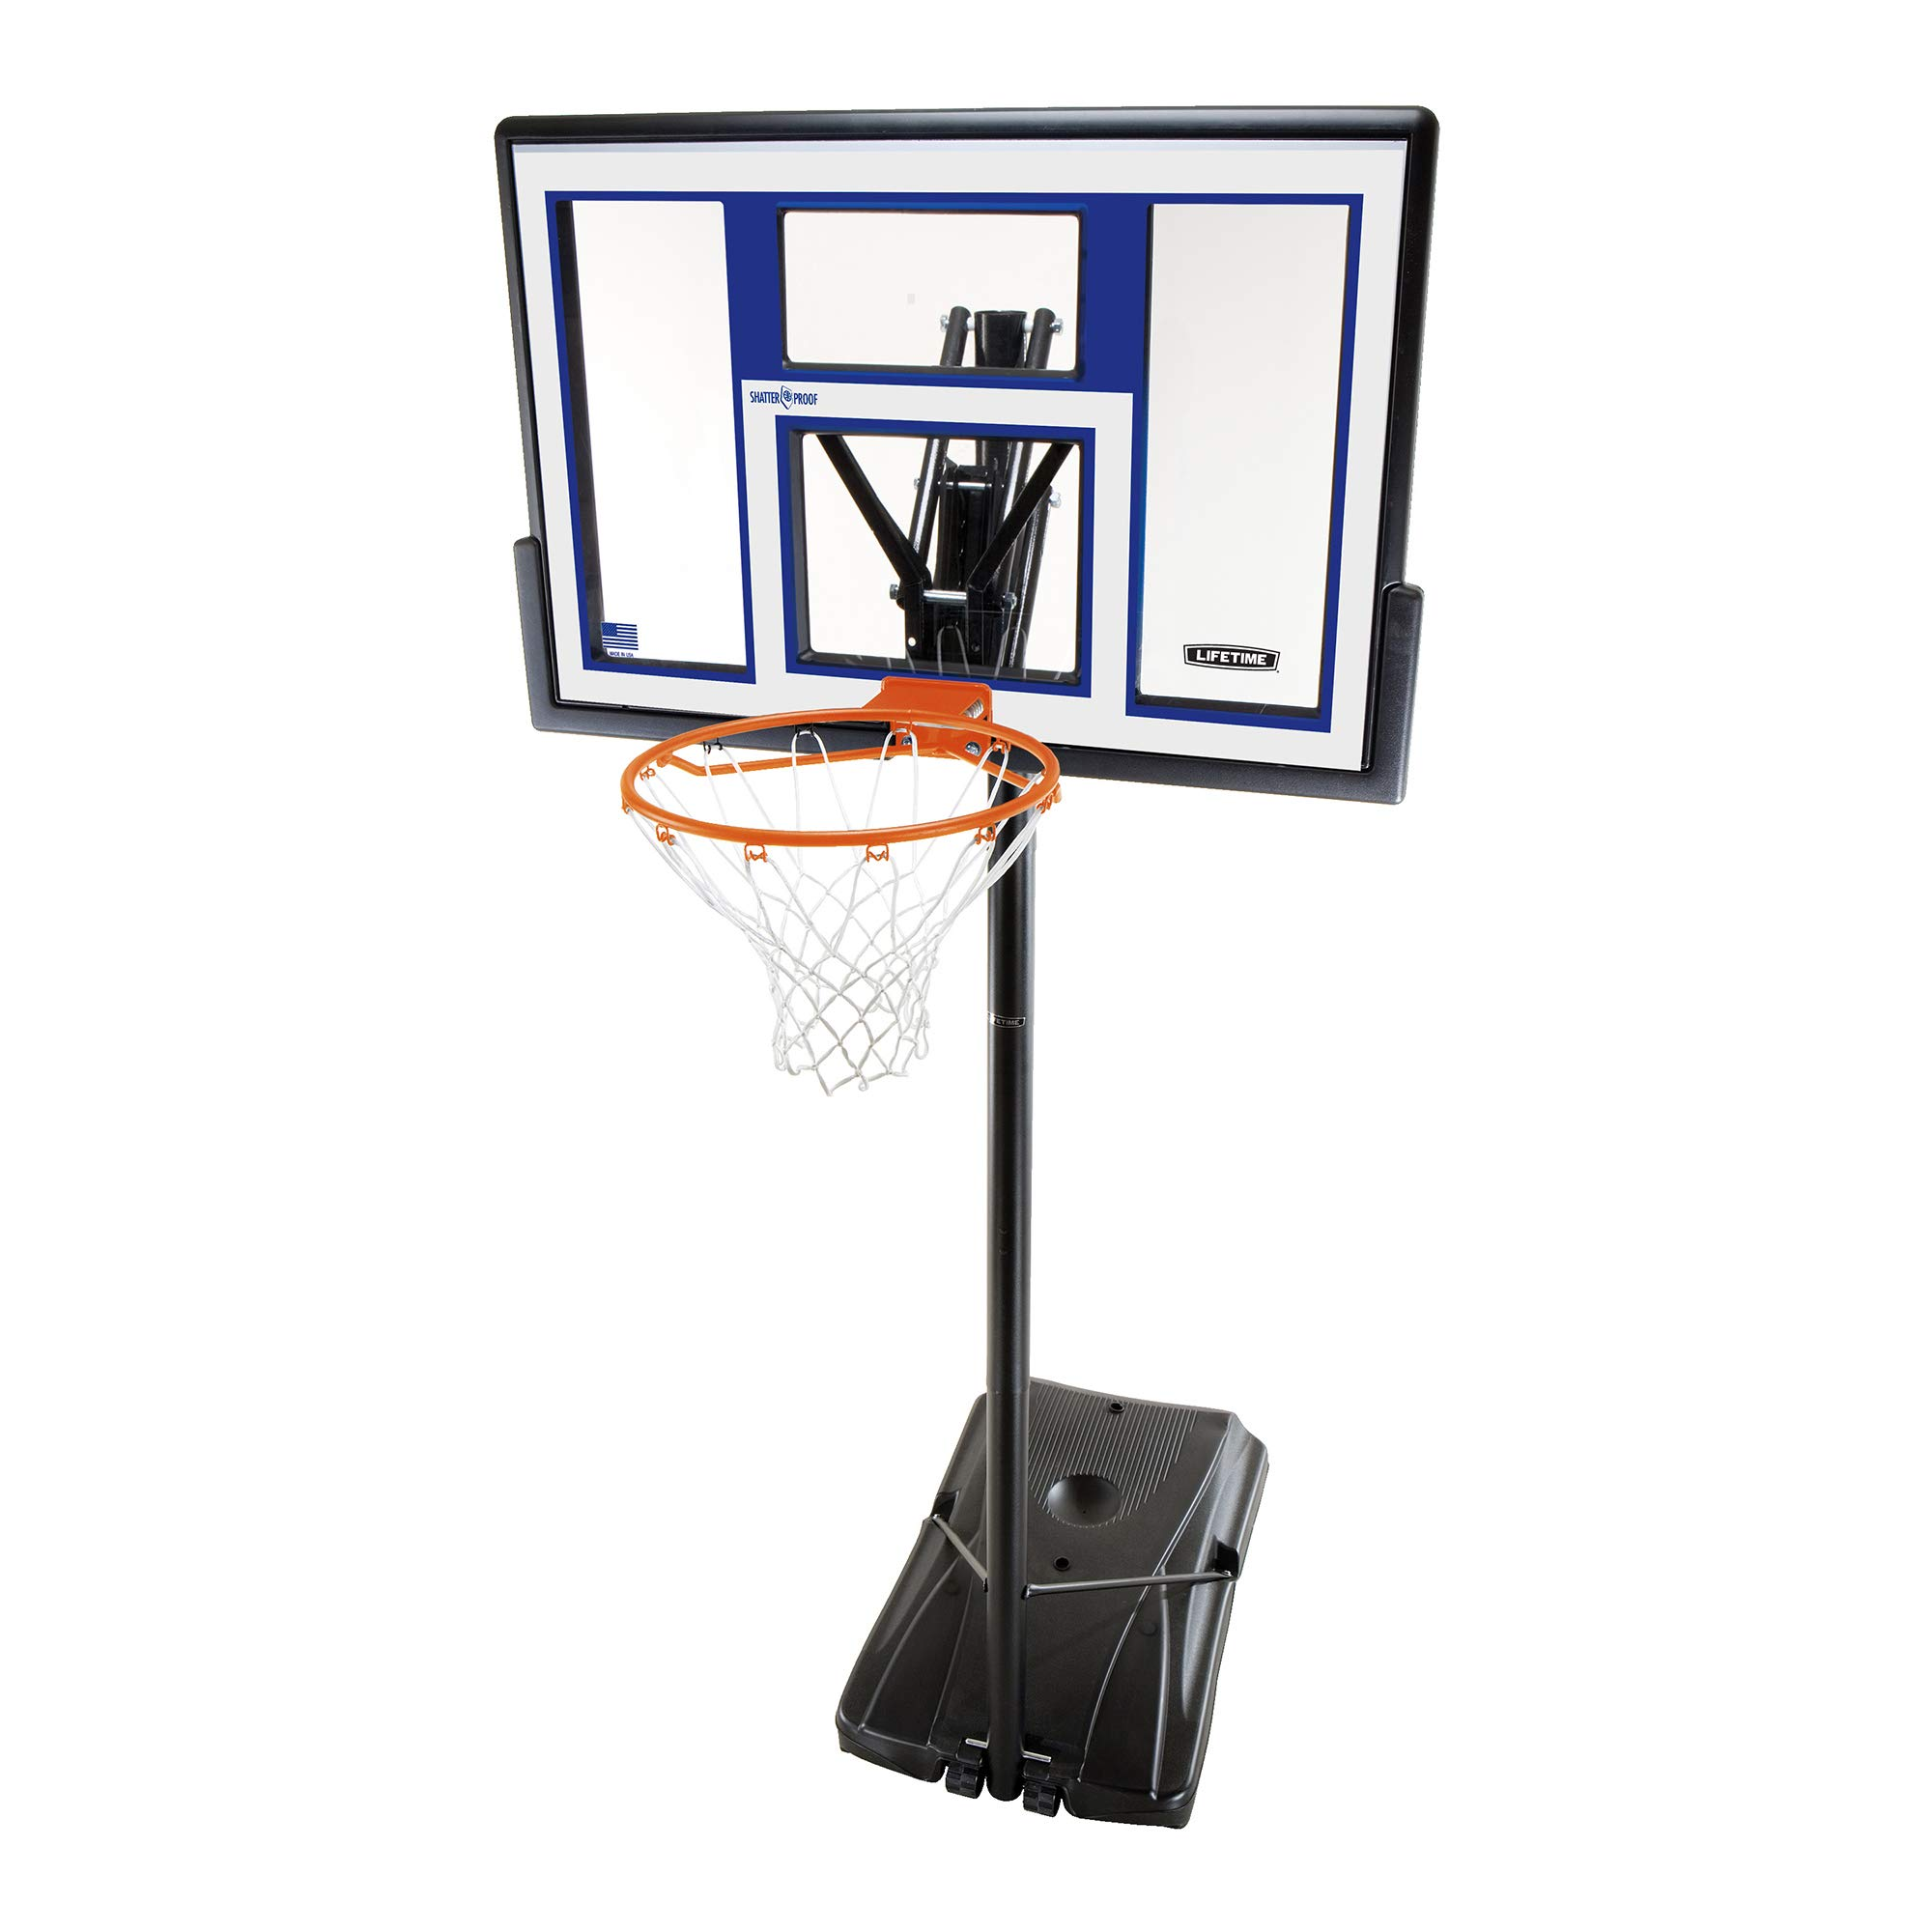 Lifetime Portable Basketball Hoop 90168 48-inch Polycarbonate Backboard System by Lifetime (Image #1)